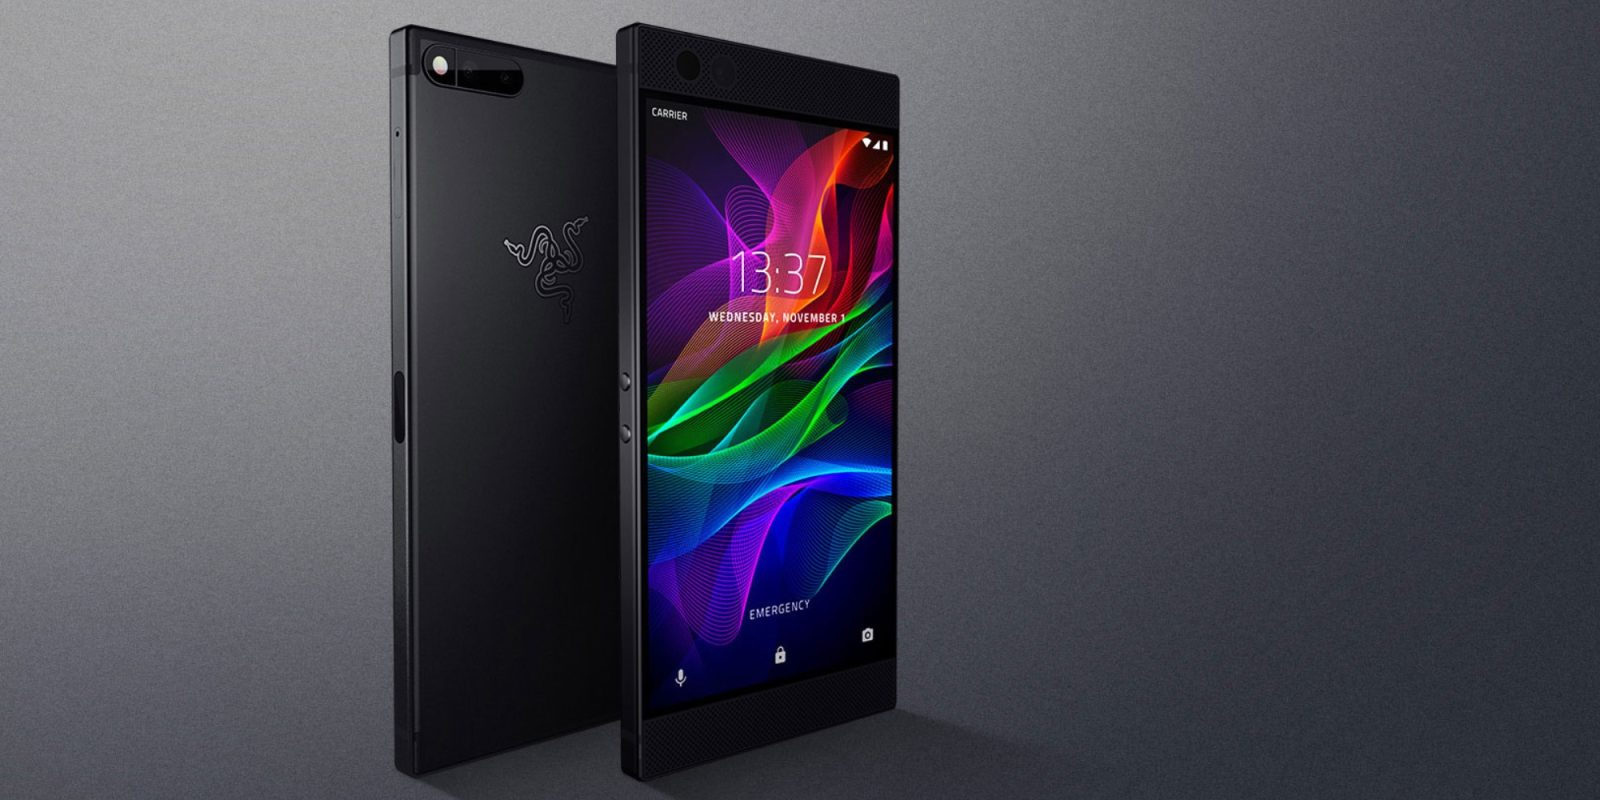 Score a notable discount on the OG Razer Phone, now down to $299 (Orig. $699)